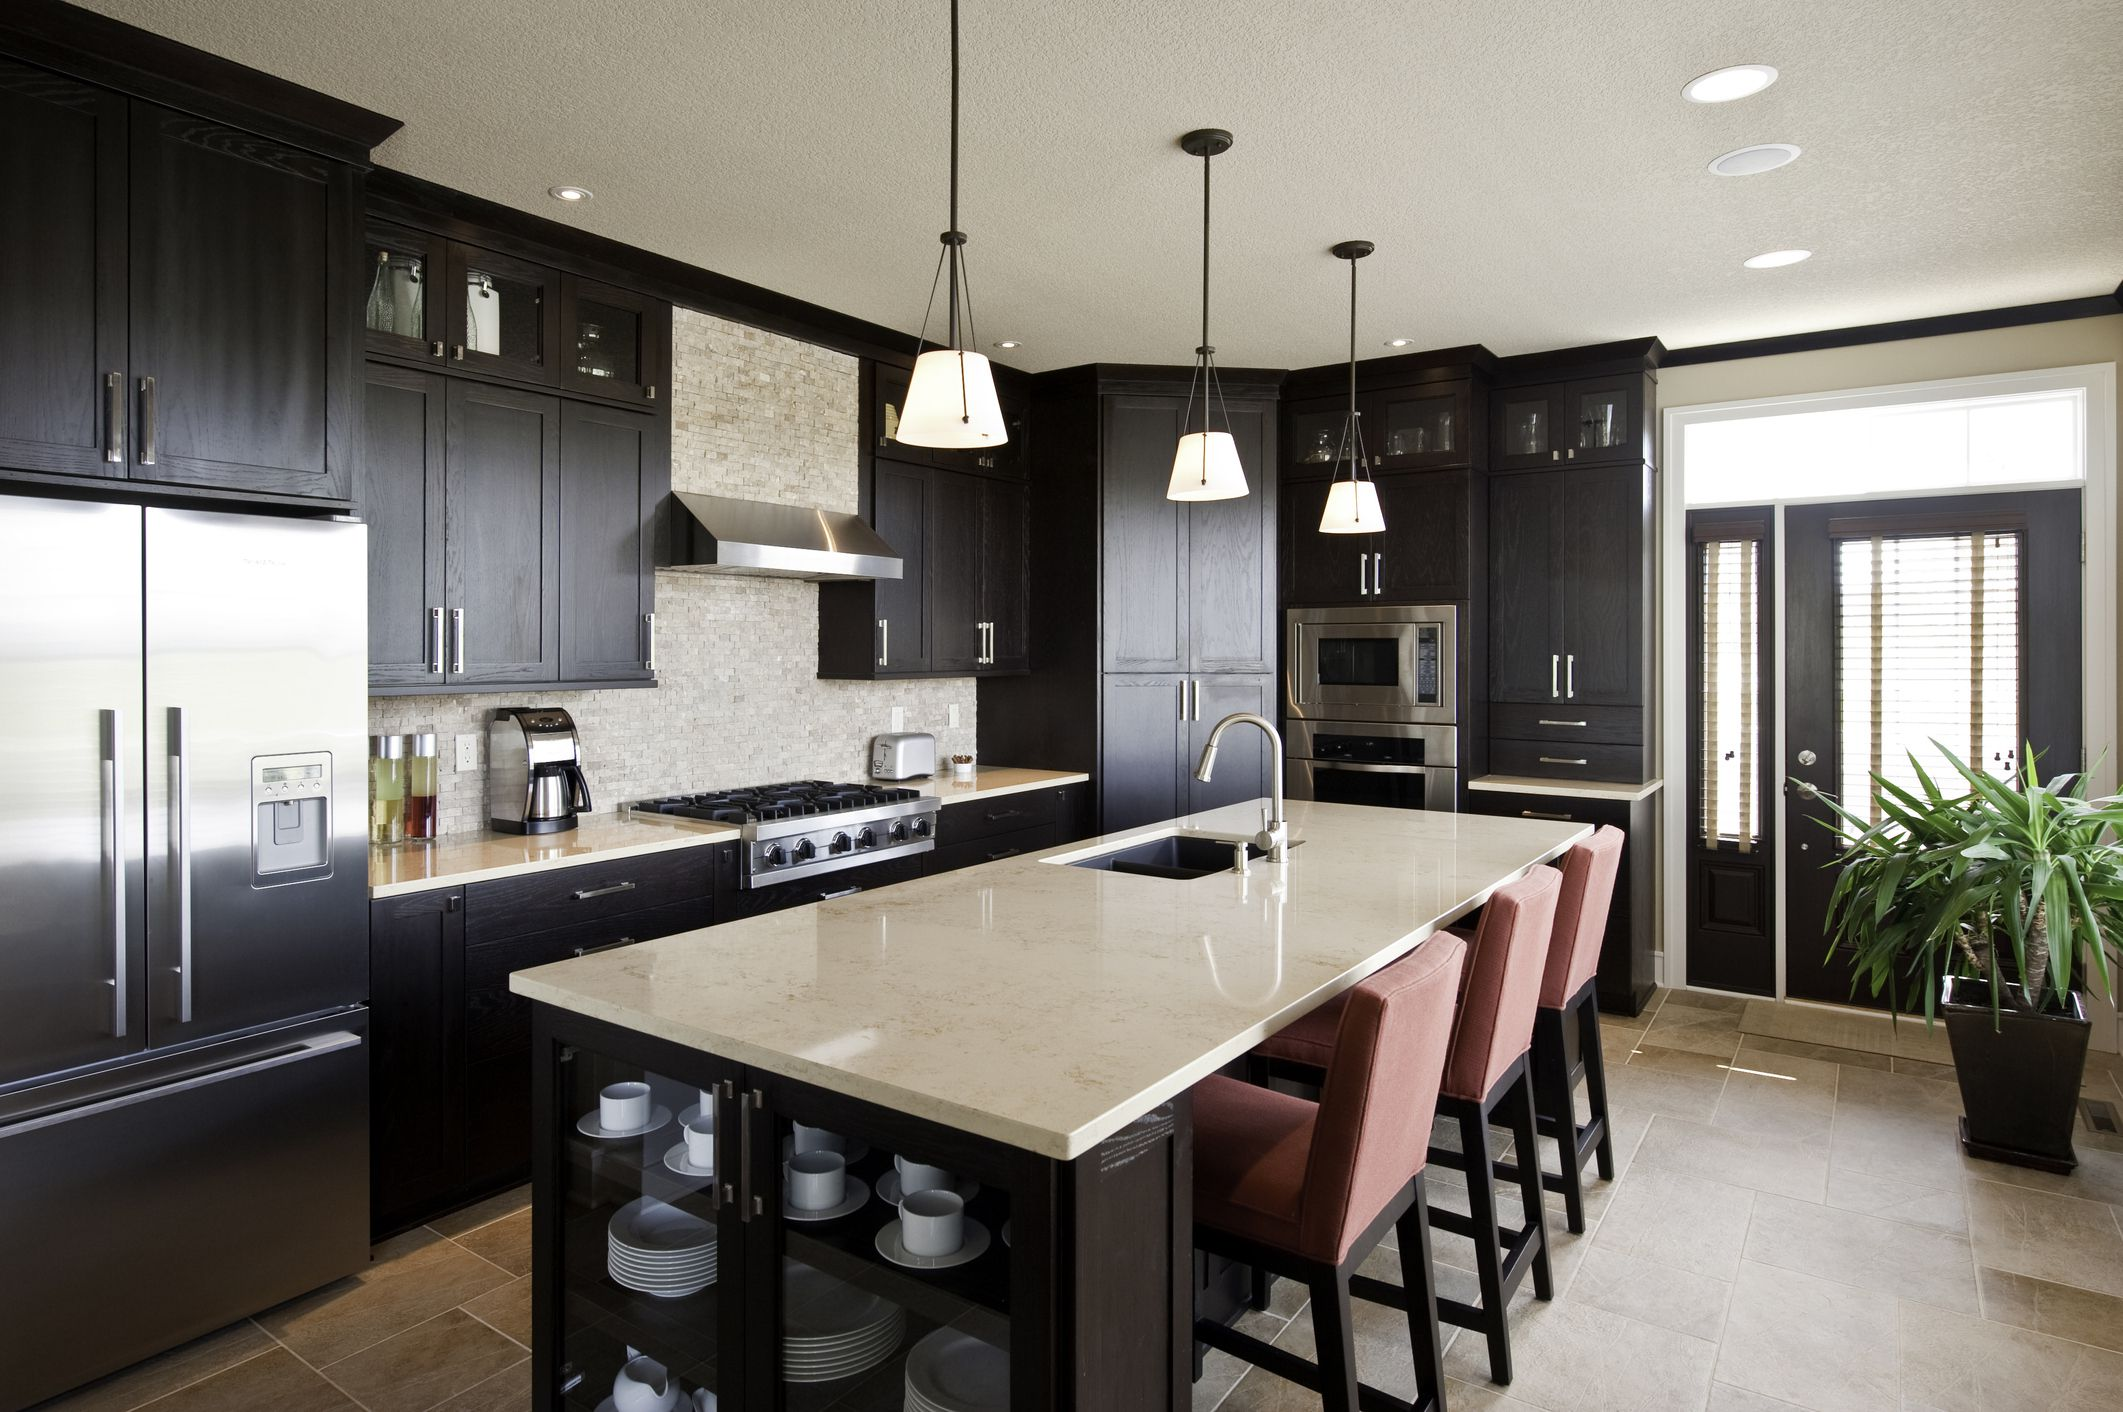 countertop prices reviews repair attractive countertops kitchen big corian surface ideas solid dining for bright cost